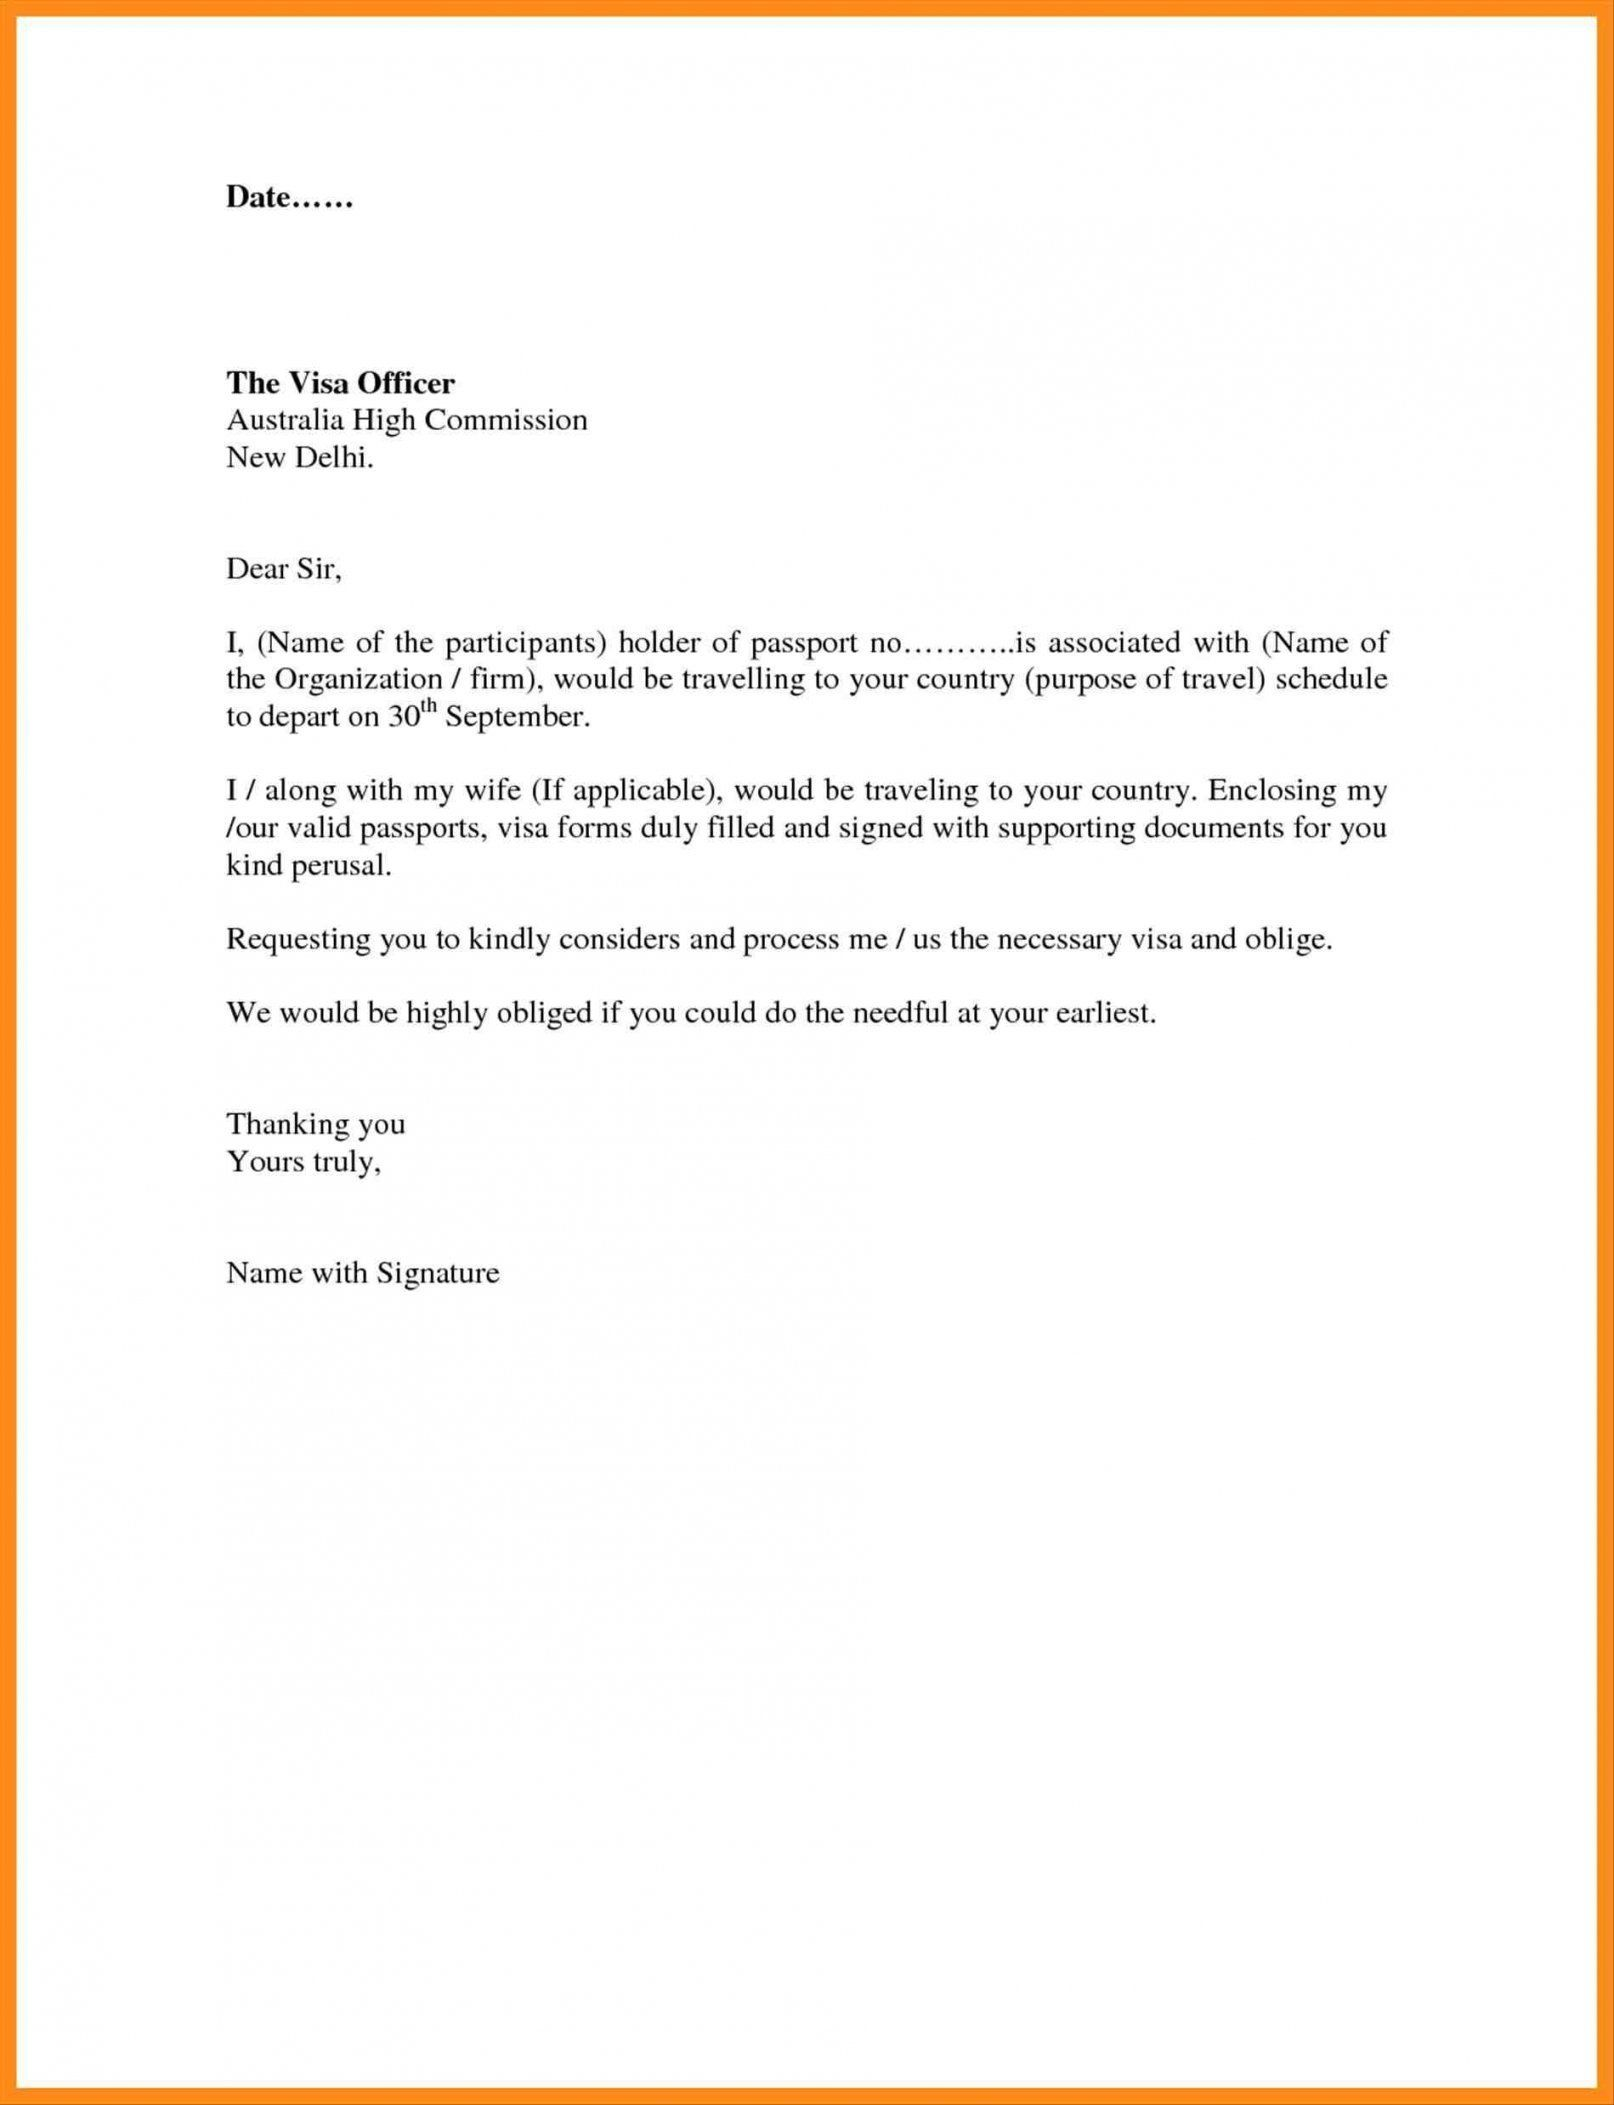 Example Of A Cv Letter 25 Cover Letter Examples Canva Find All Types Of Job Positions Or Industries In Our Collection Brittani Libby